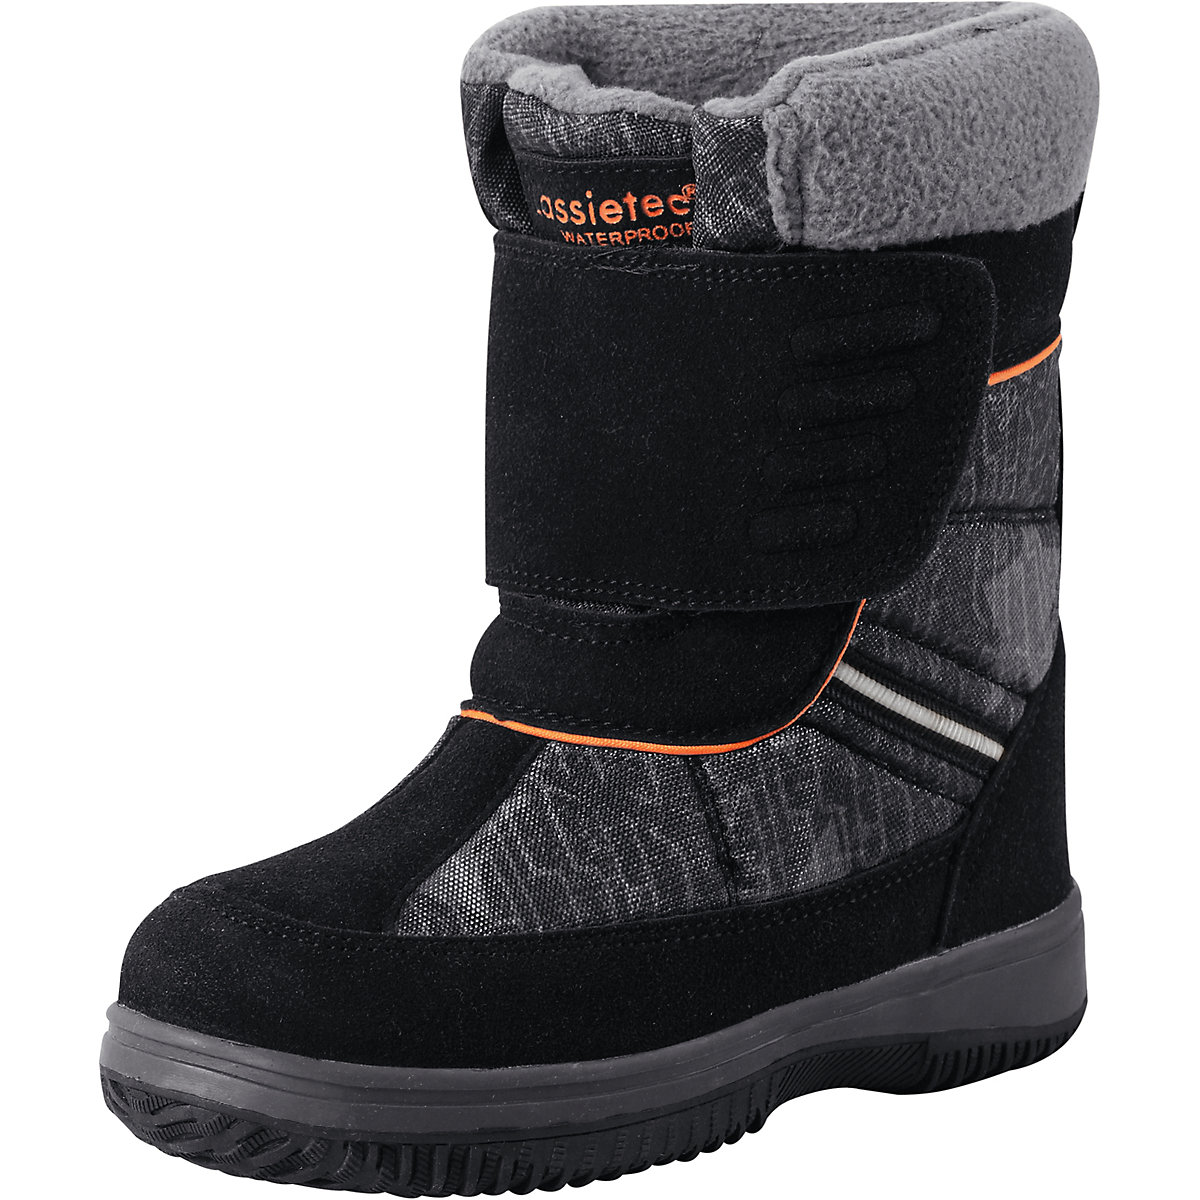 Boots LASSIE For Boys 8622545 Valenki Uggi Winter Baby Shoes Kids MTpromo